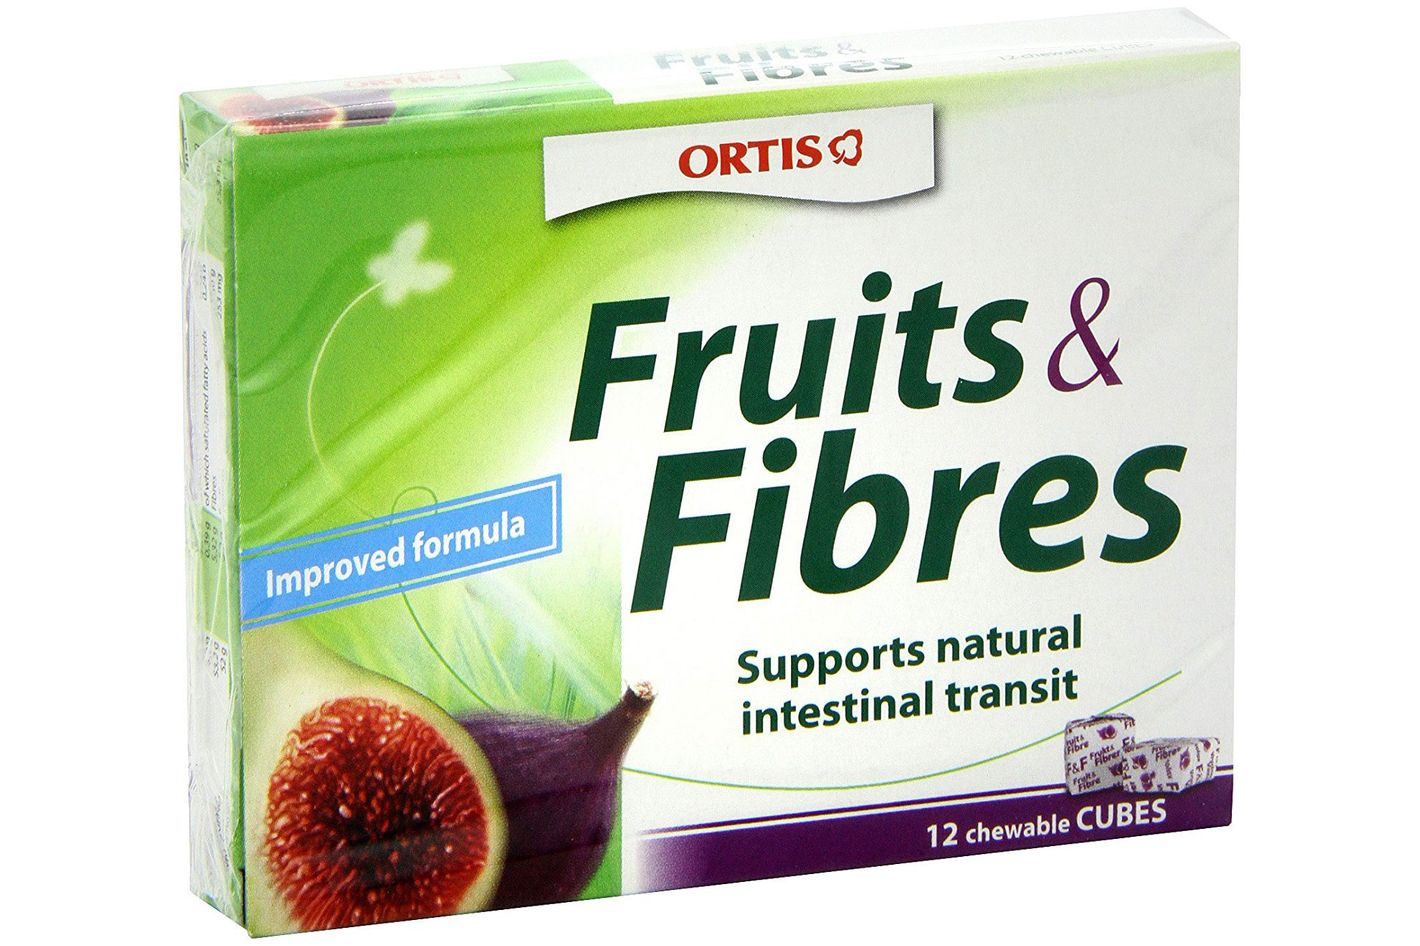 Ortis Fruit and Fibres